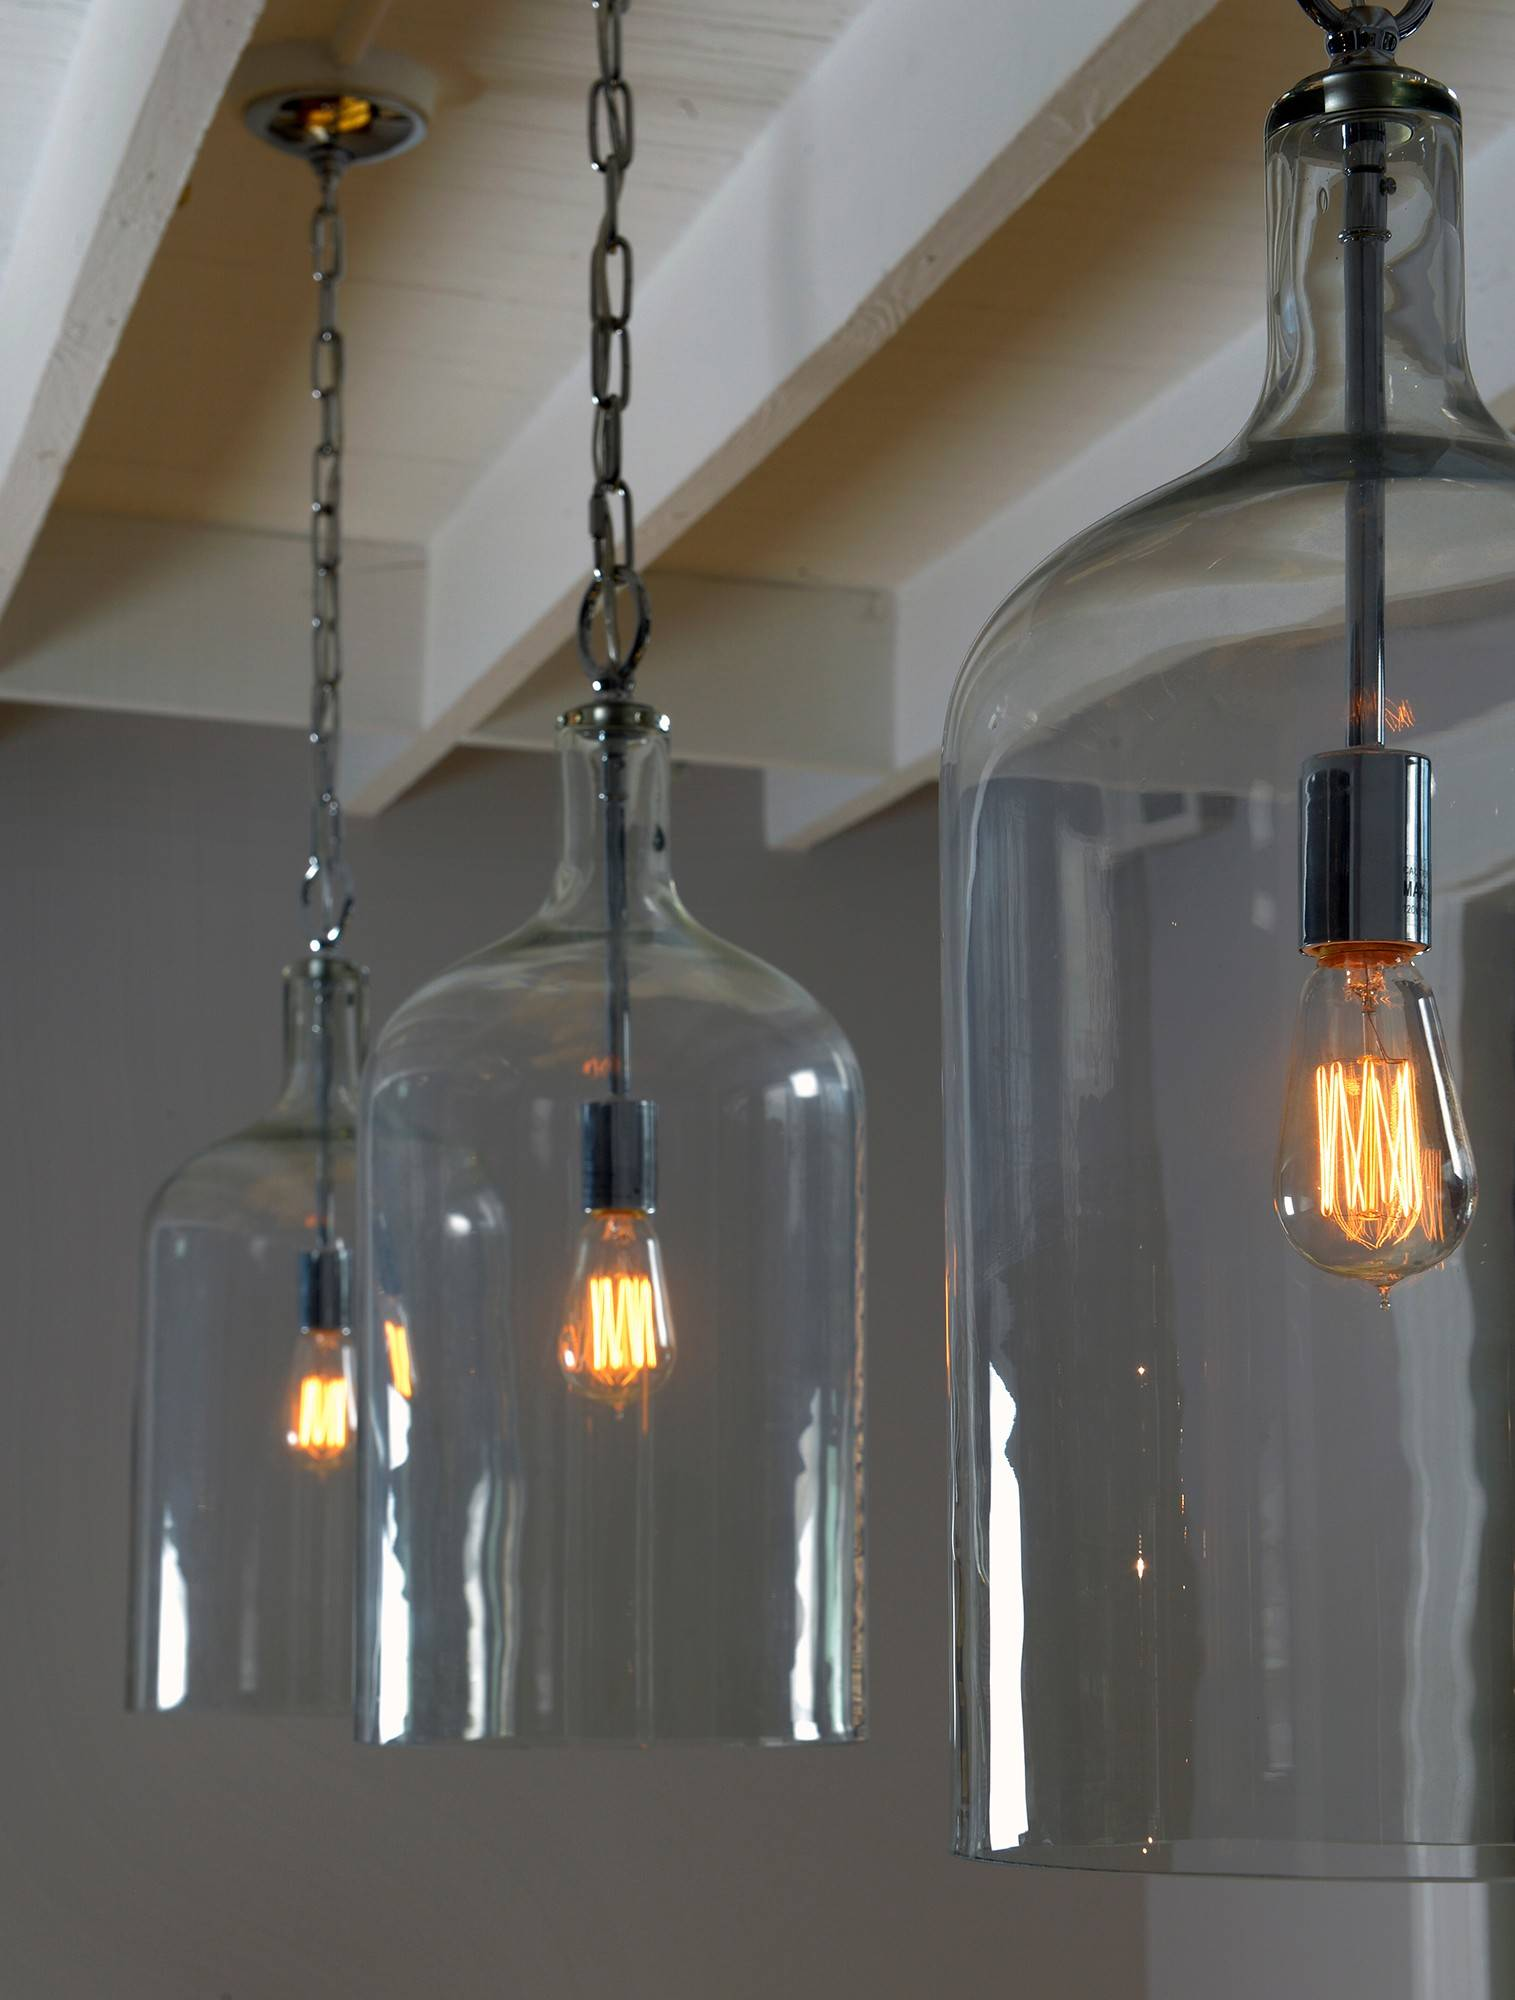 These Glass Jug Pendant Lights From Shades Of Light Add An Industrial Note  To The Dining